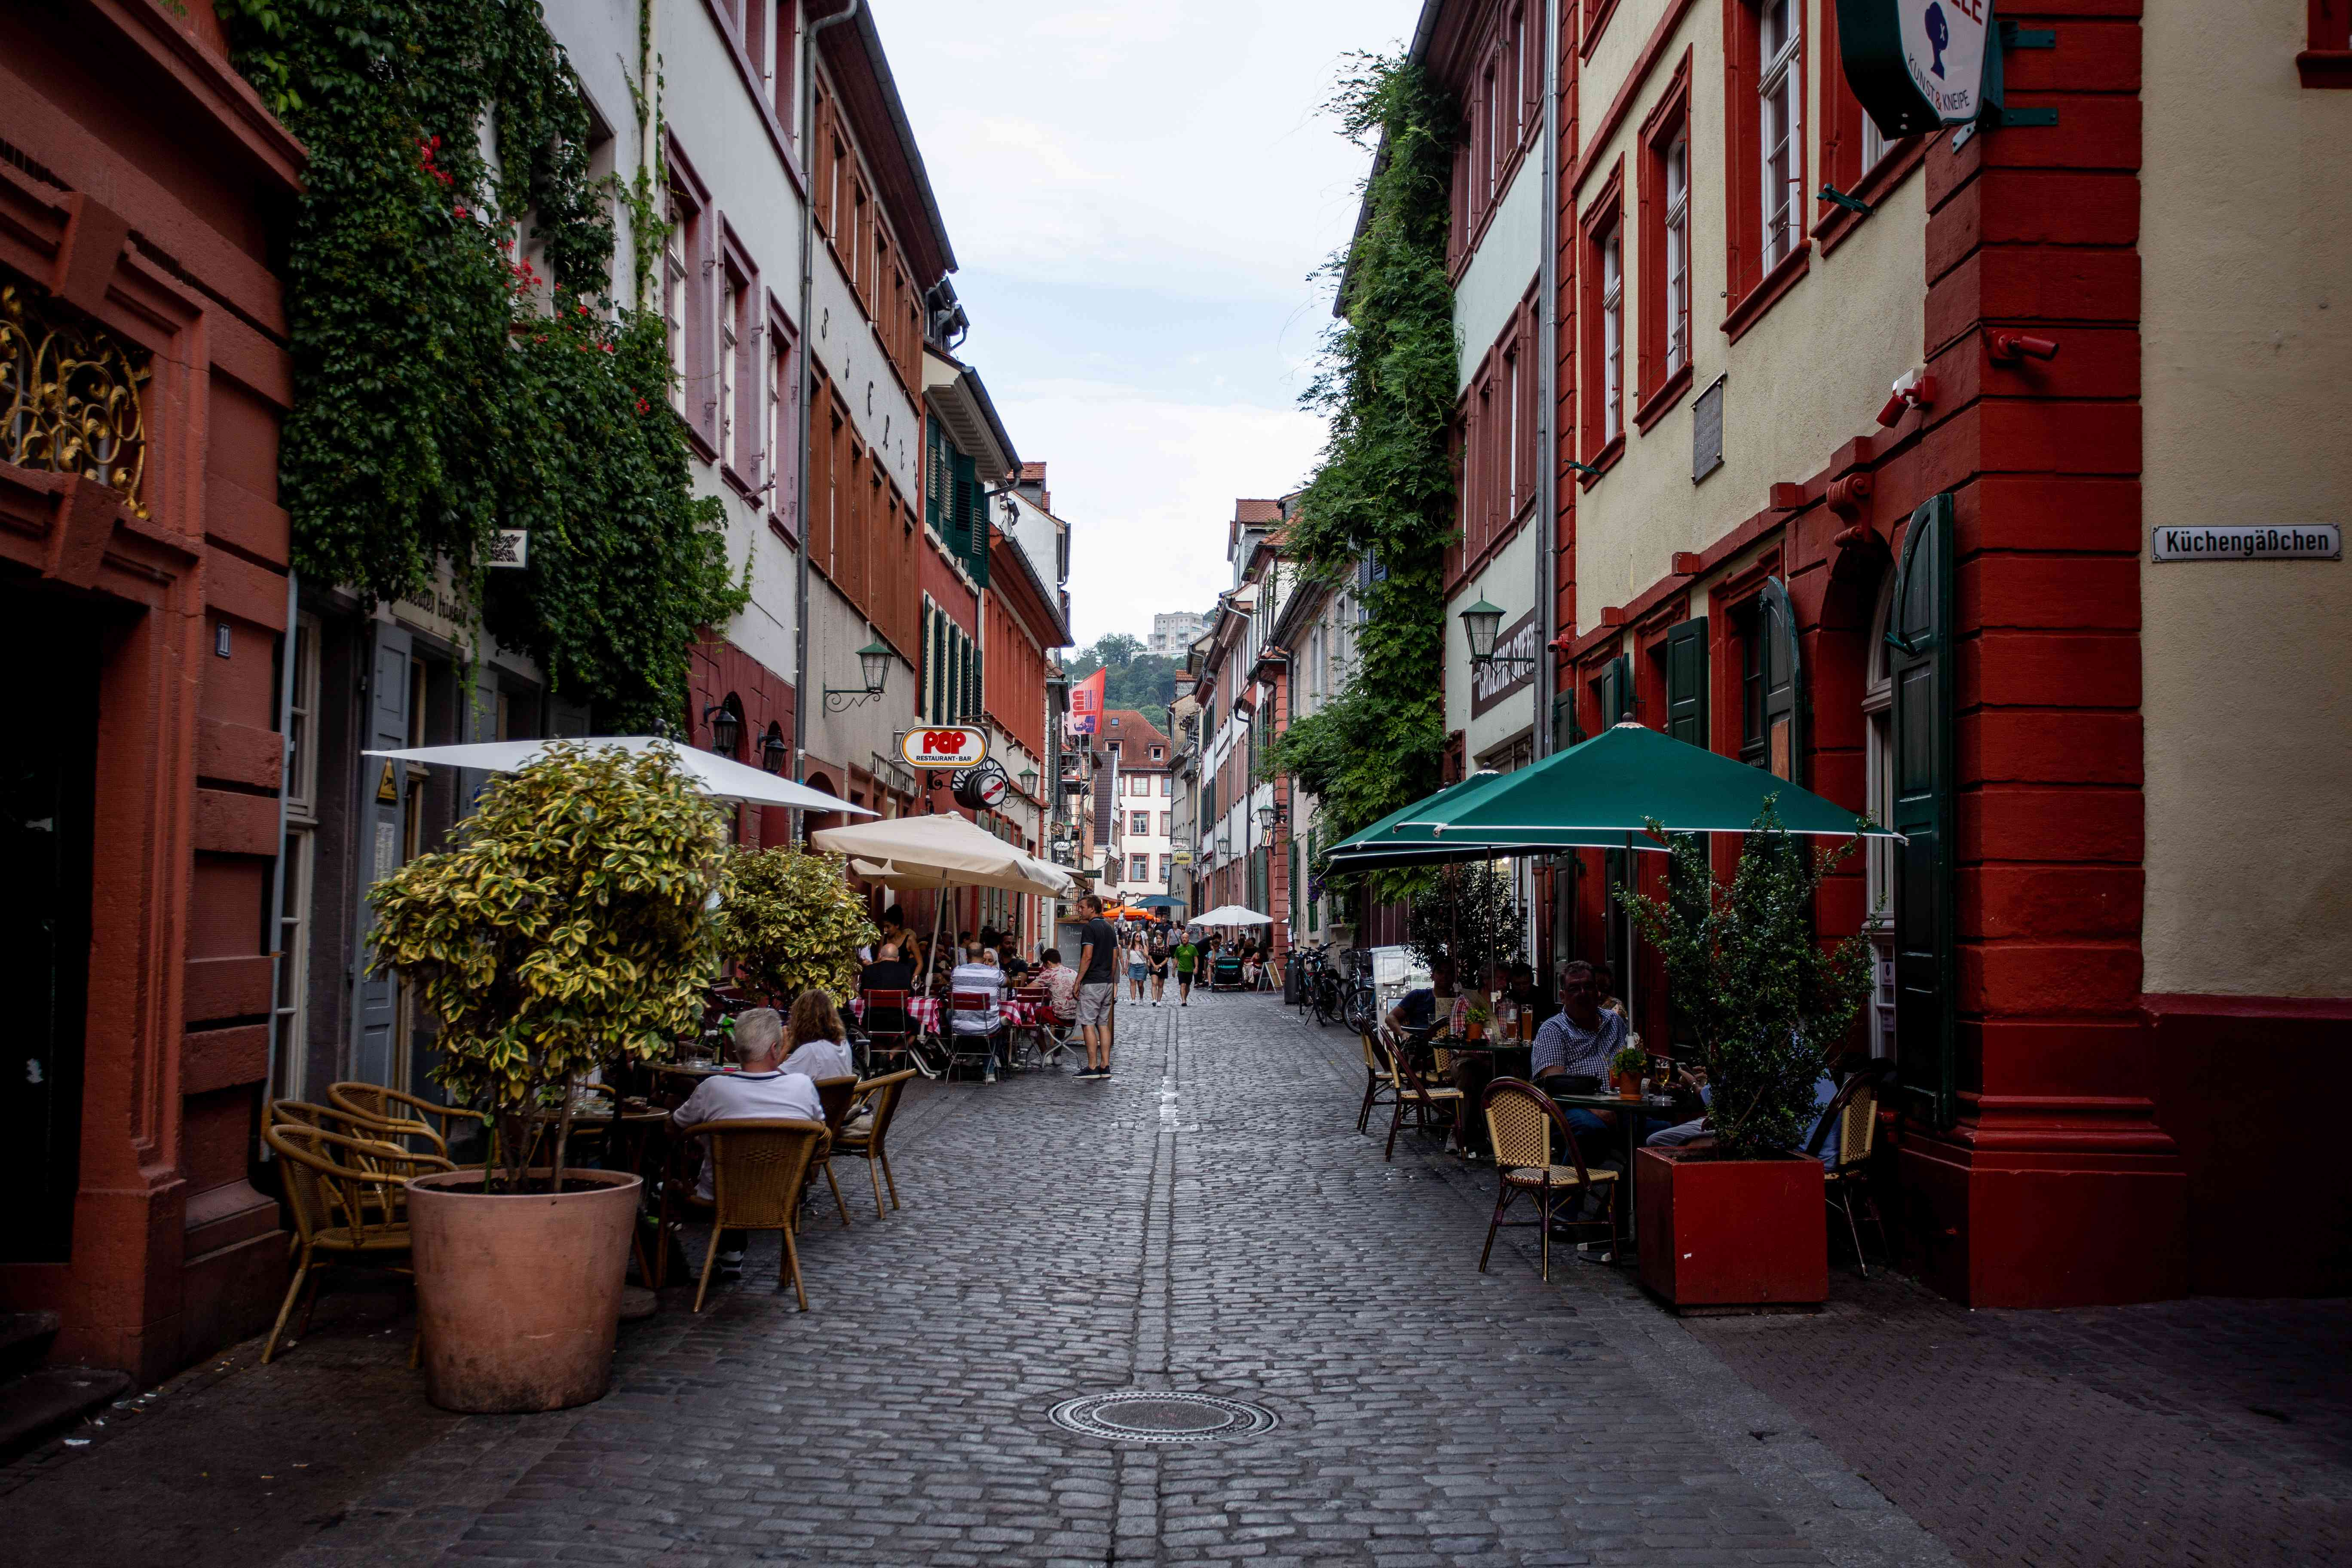 People sitting outside at cafes on a cobblestone alley of Untere Strasse